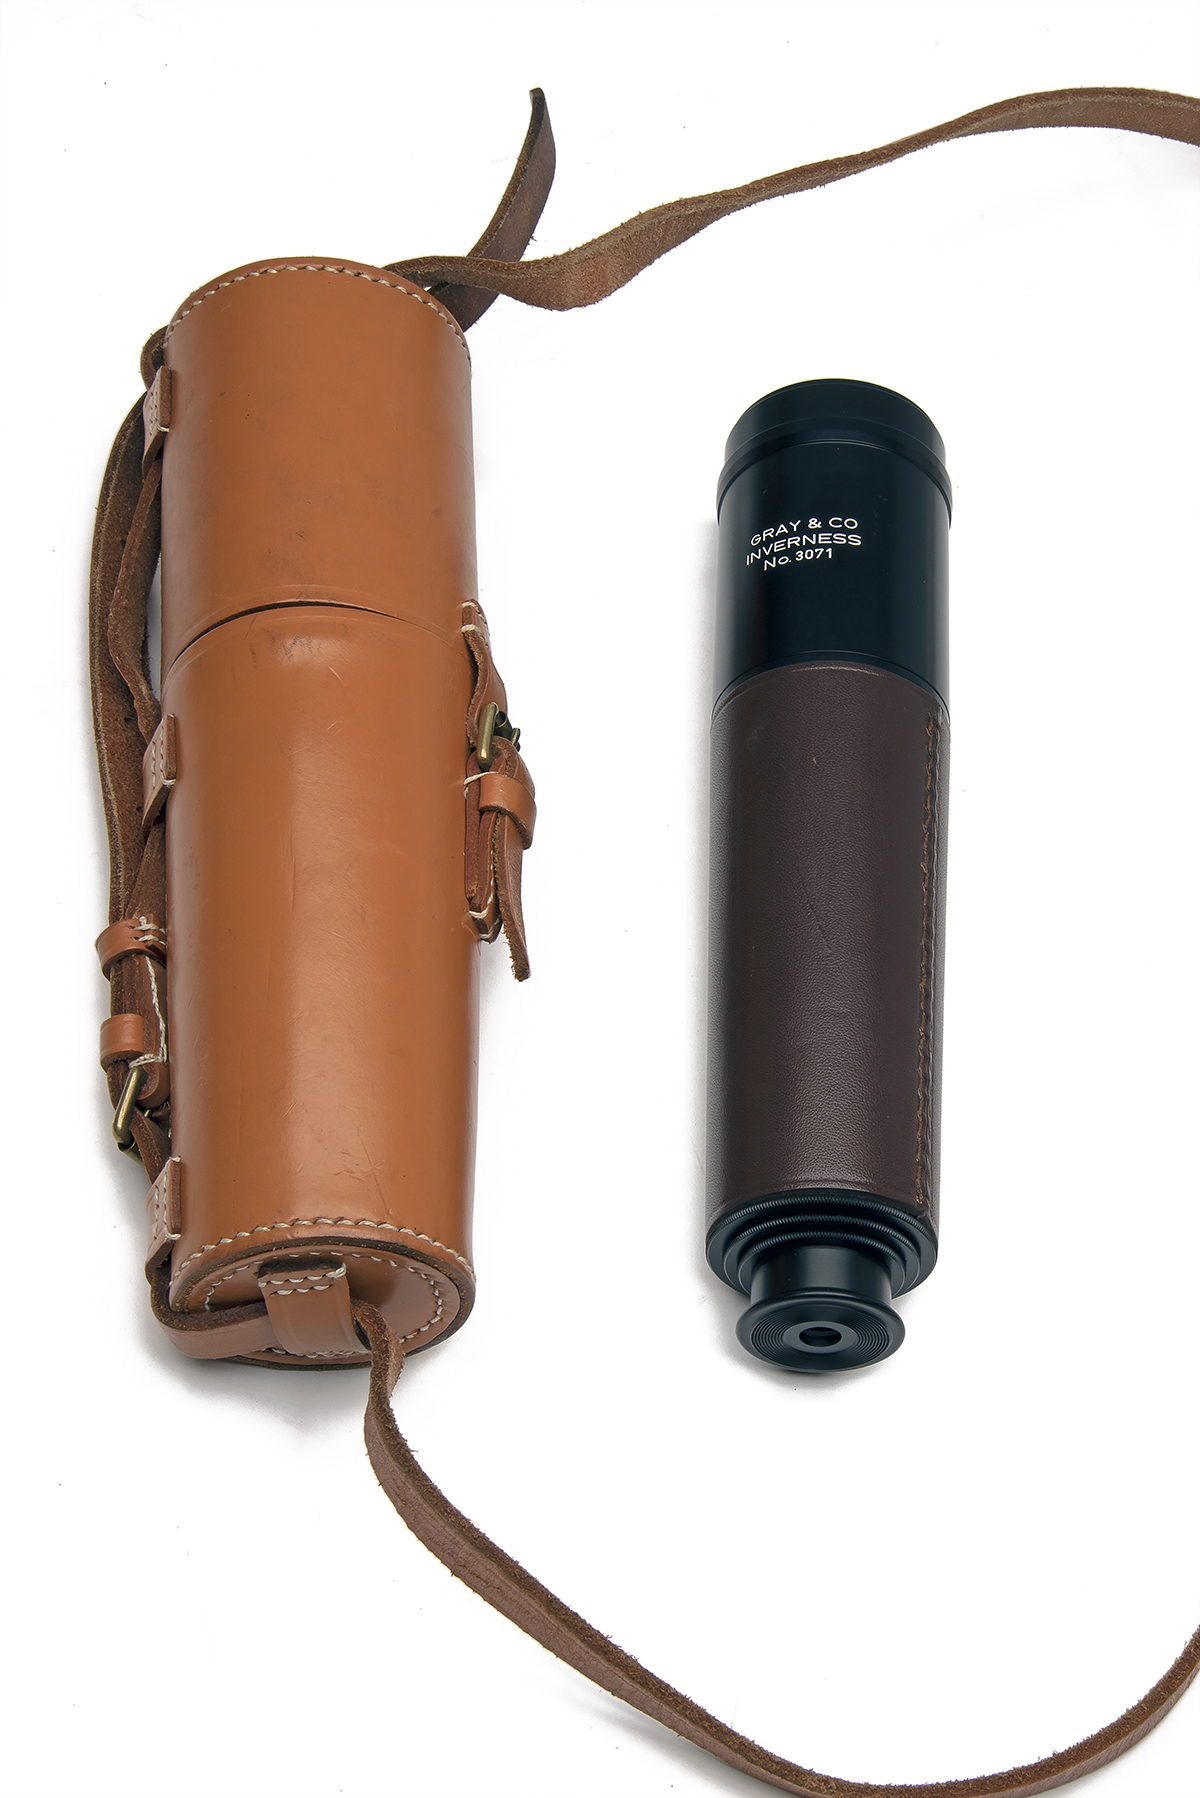 GRAY & CO. (INVERNESS) A LEATHER-BOUND THREE-DRAW STALKING TELESCOPE, no. 3071, with anodised tubes,